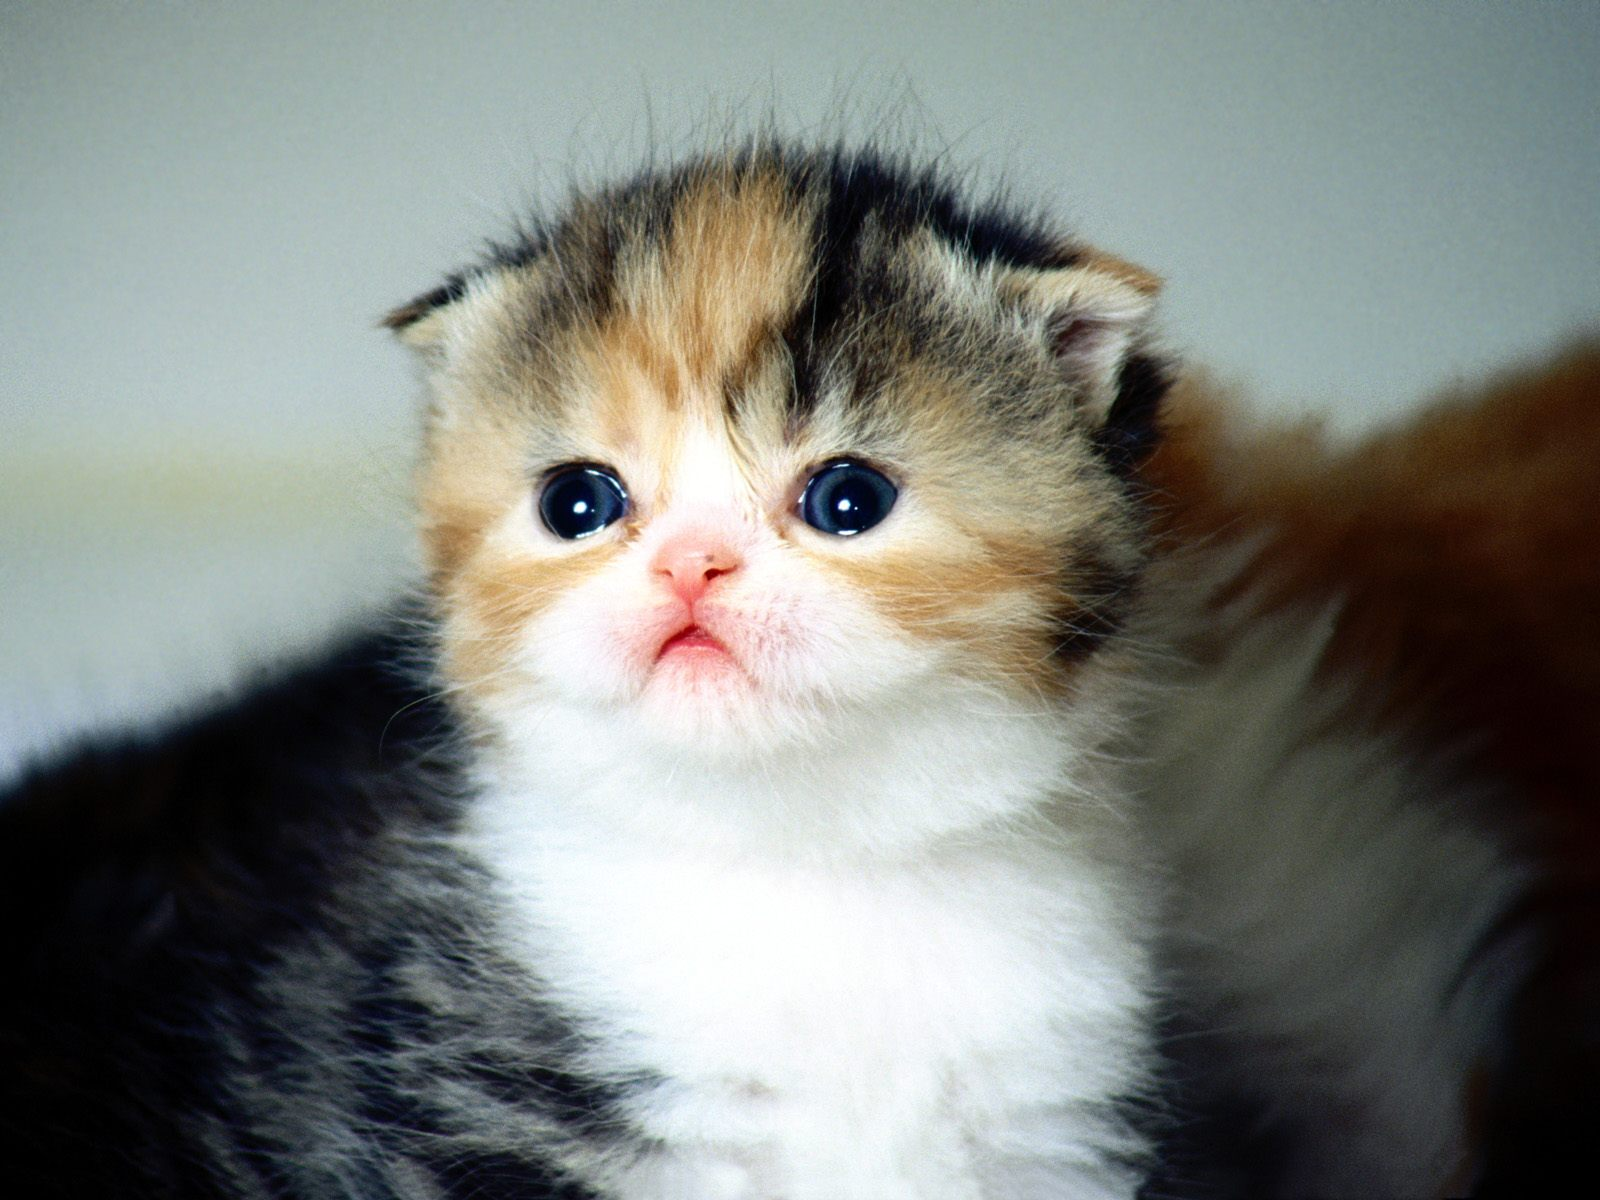 Wallpapers Dhamaka Cute Baby Cat Wallpapers And Cute Baby Cat Pics And Cat Images